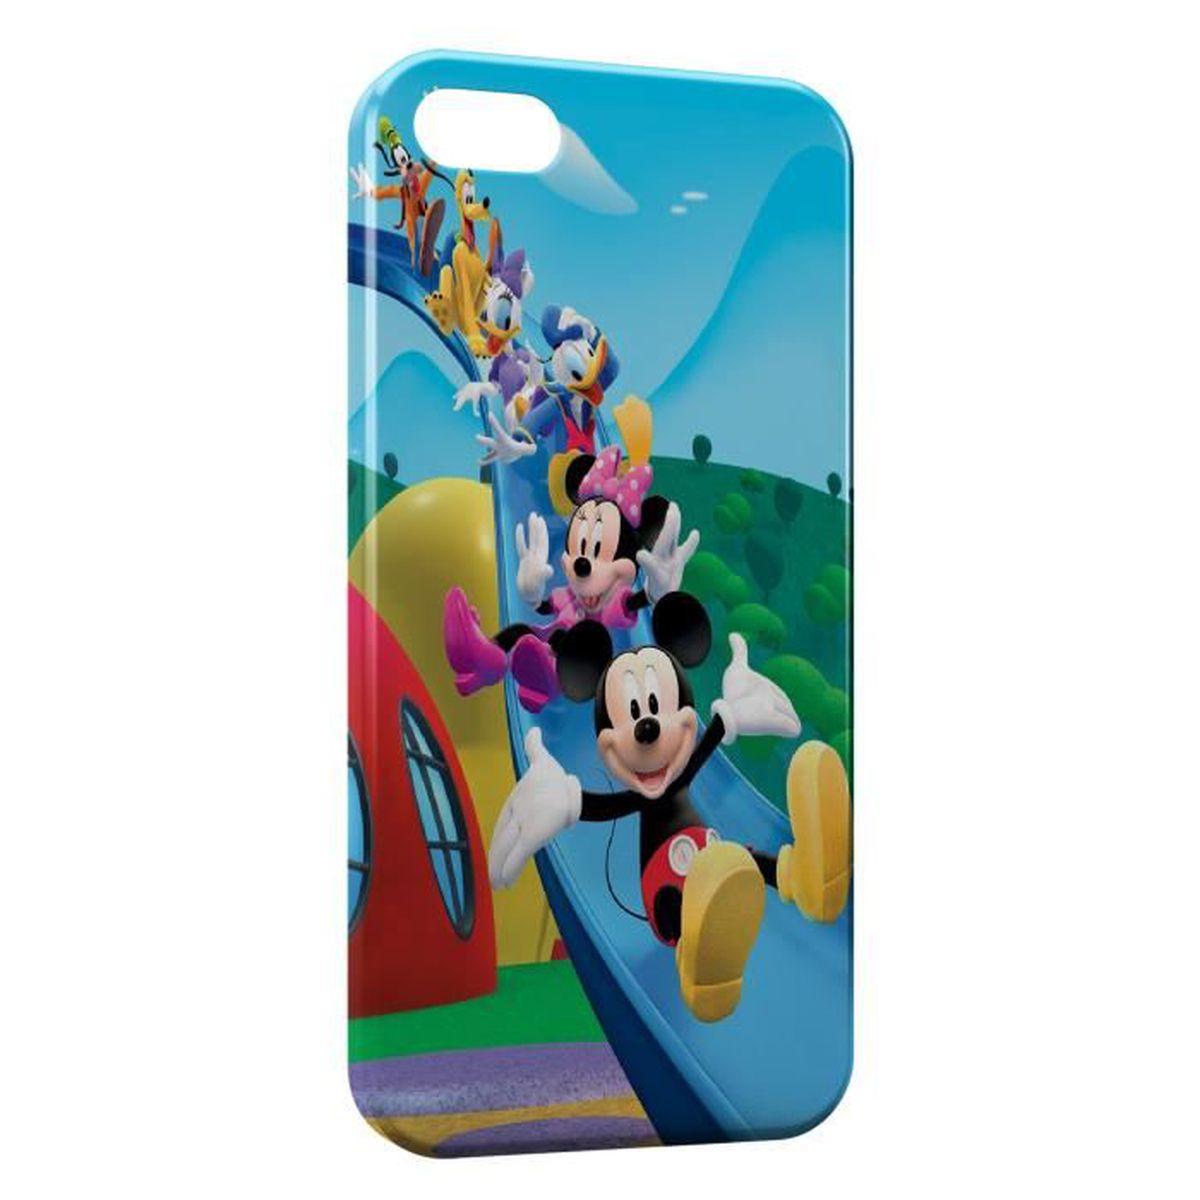 coque iphone 5c mickey minnie donald daisy tobogga